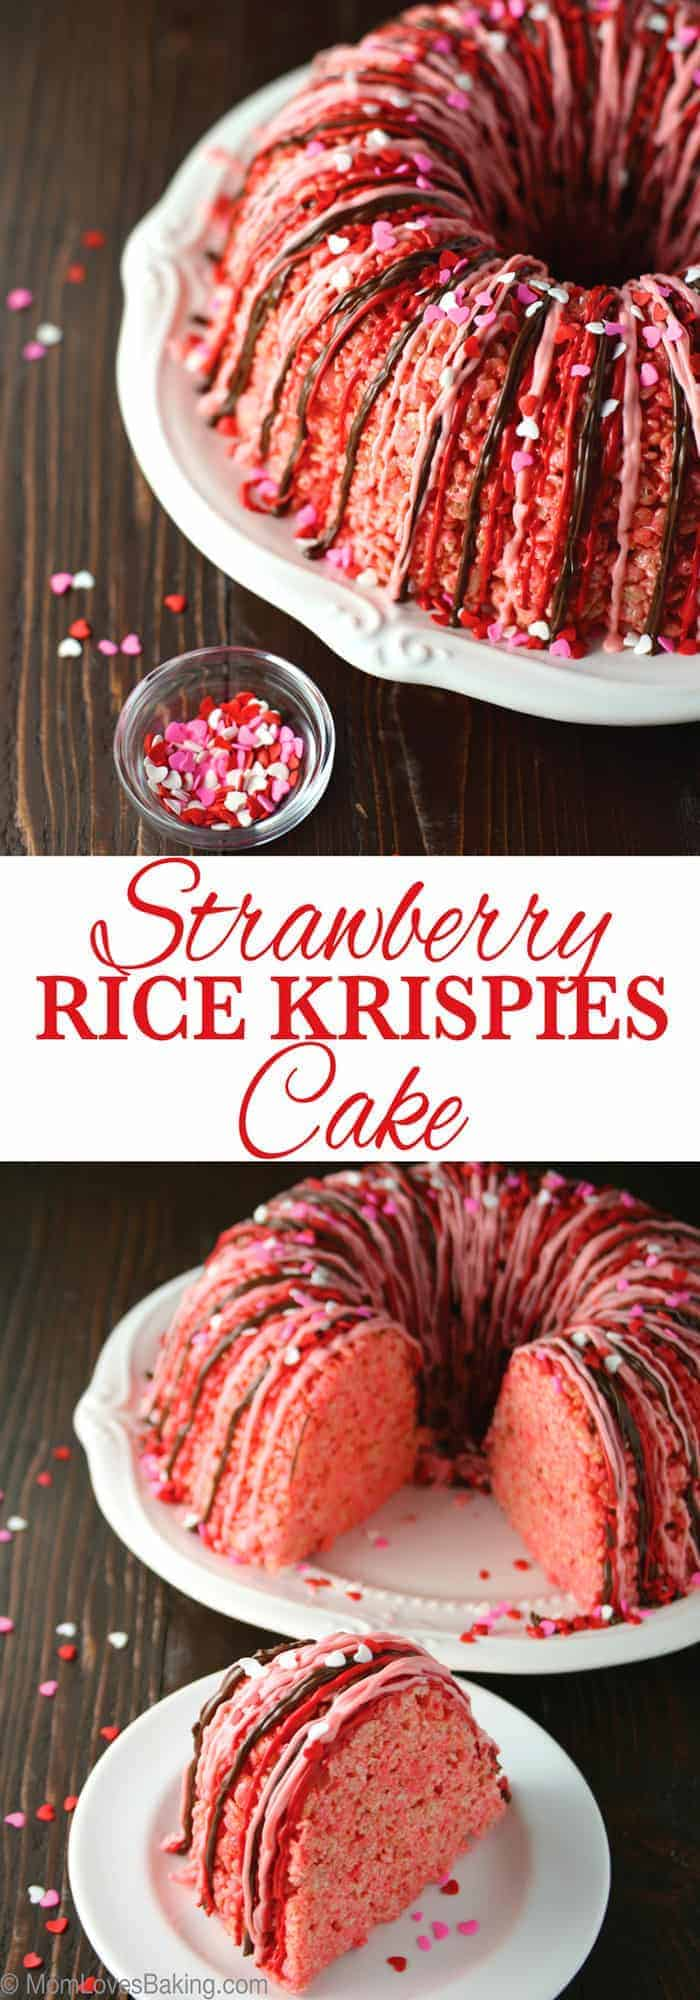 Strawberry Rice Krispies Cake